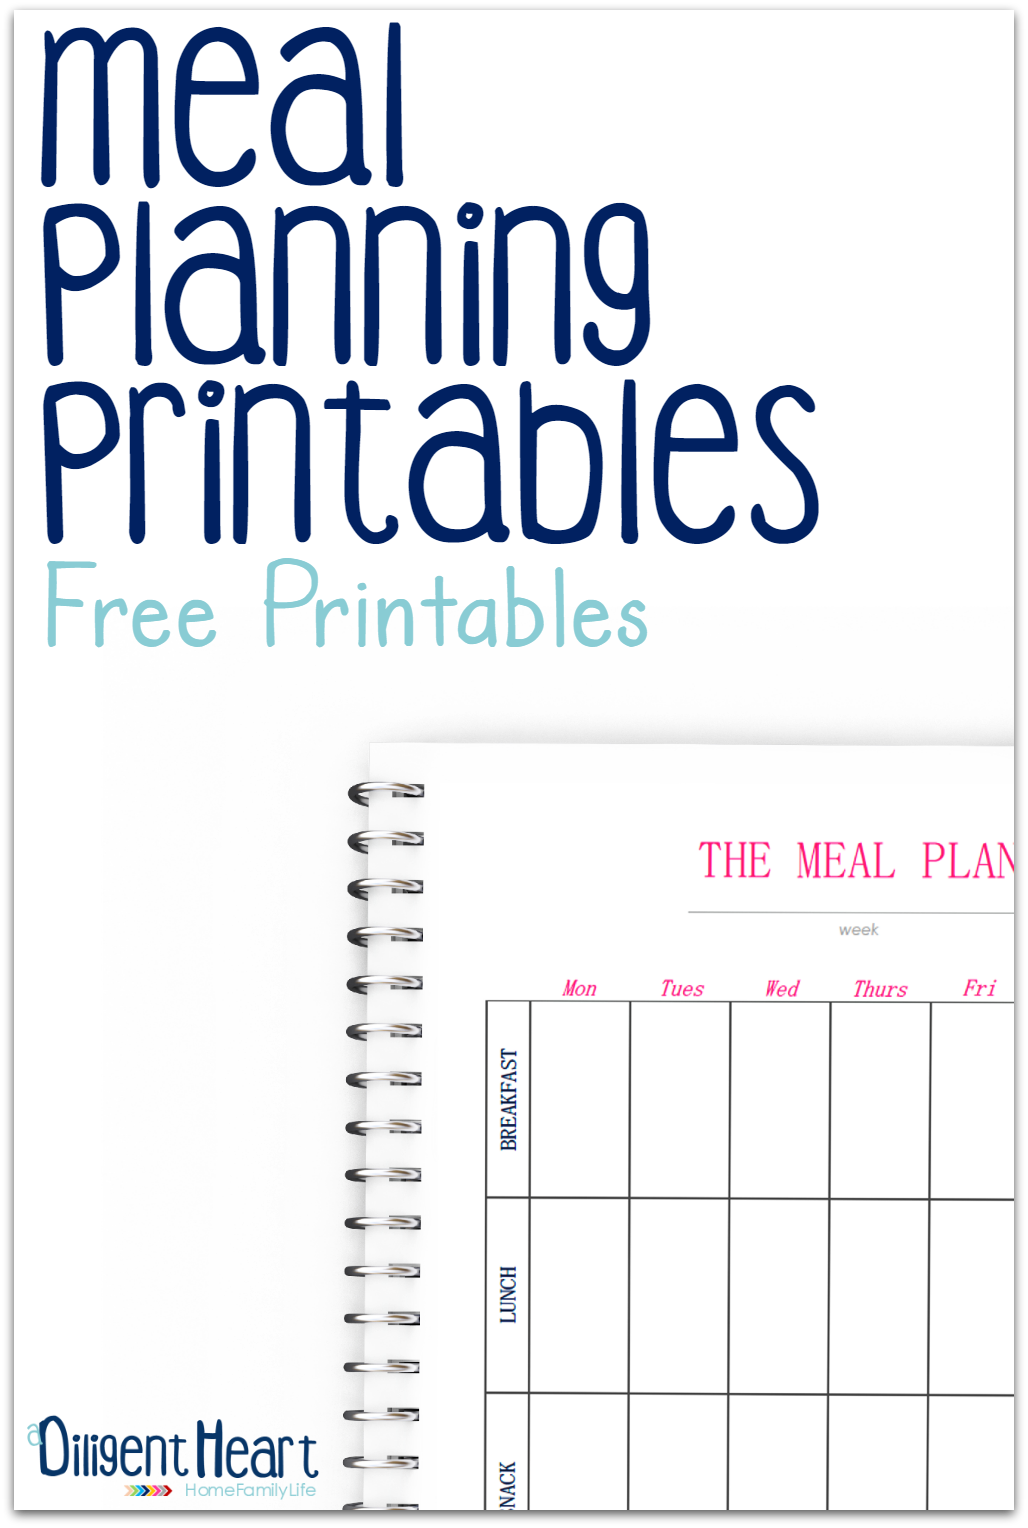 Looking for some sweet, clean, and easy-to-use meal planning pages? This printable will help you get a better hold of your meal planning sessions. With everything in one place, you'll be on top of your meal planning in no time! | adiligentherat.com